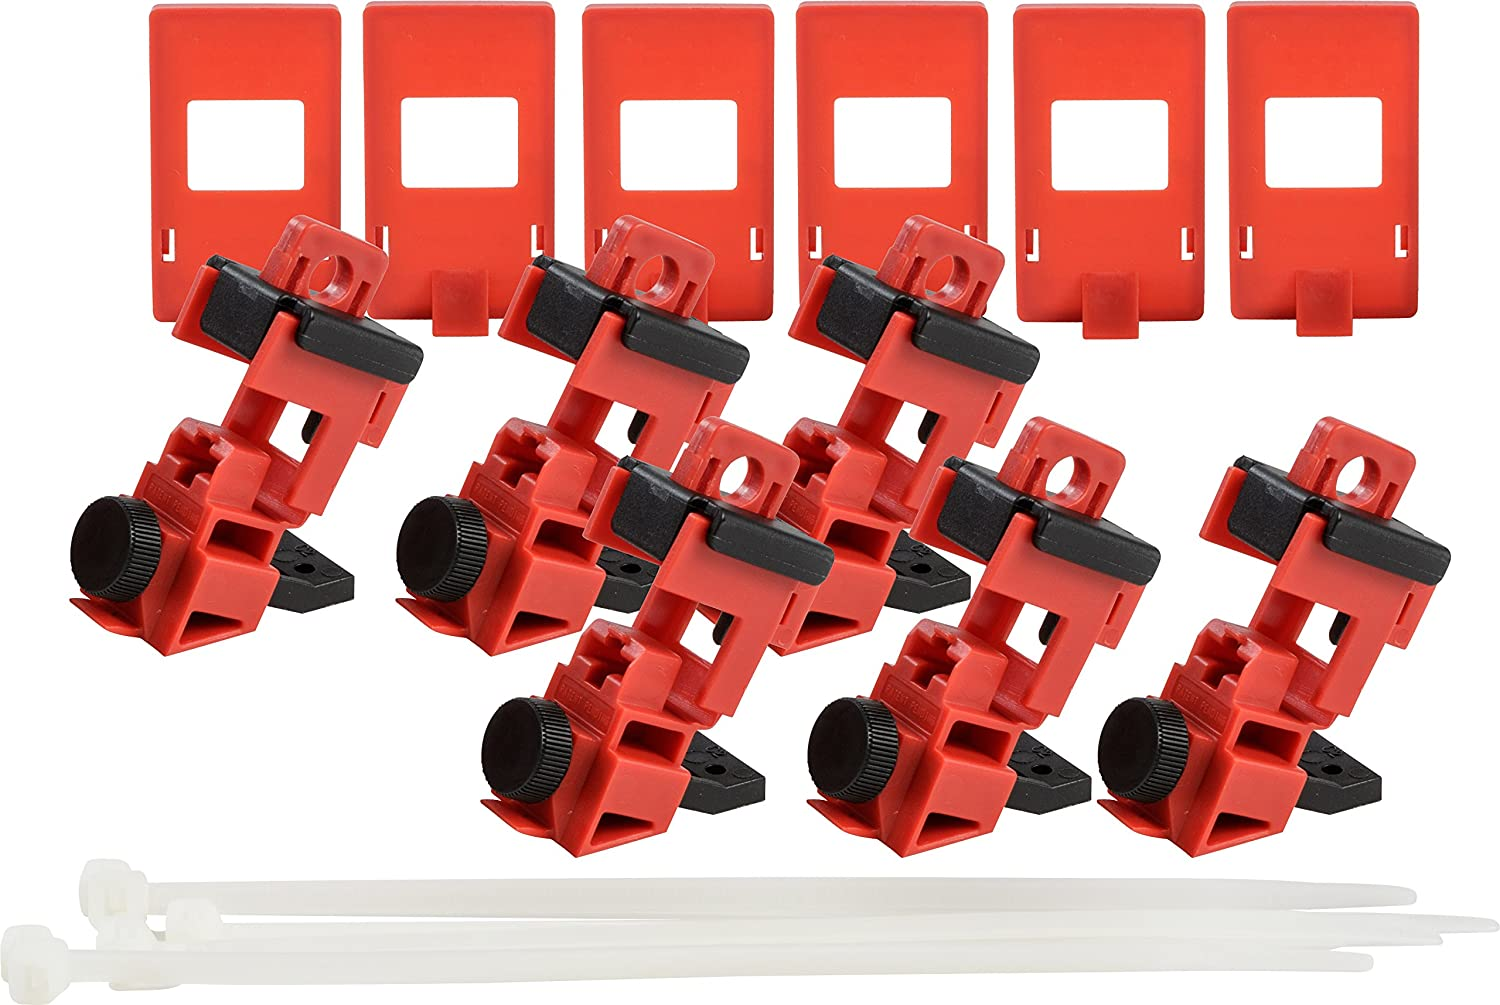 Brady Taglock Circuit Breaker Lockout Devices 120//277 Volt Clamp-On Single-Pole Breaker Lockout Device with Detachable Cleat Red 148698 No Lock Needed Pack of 6